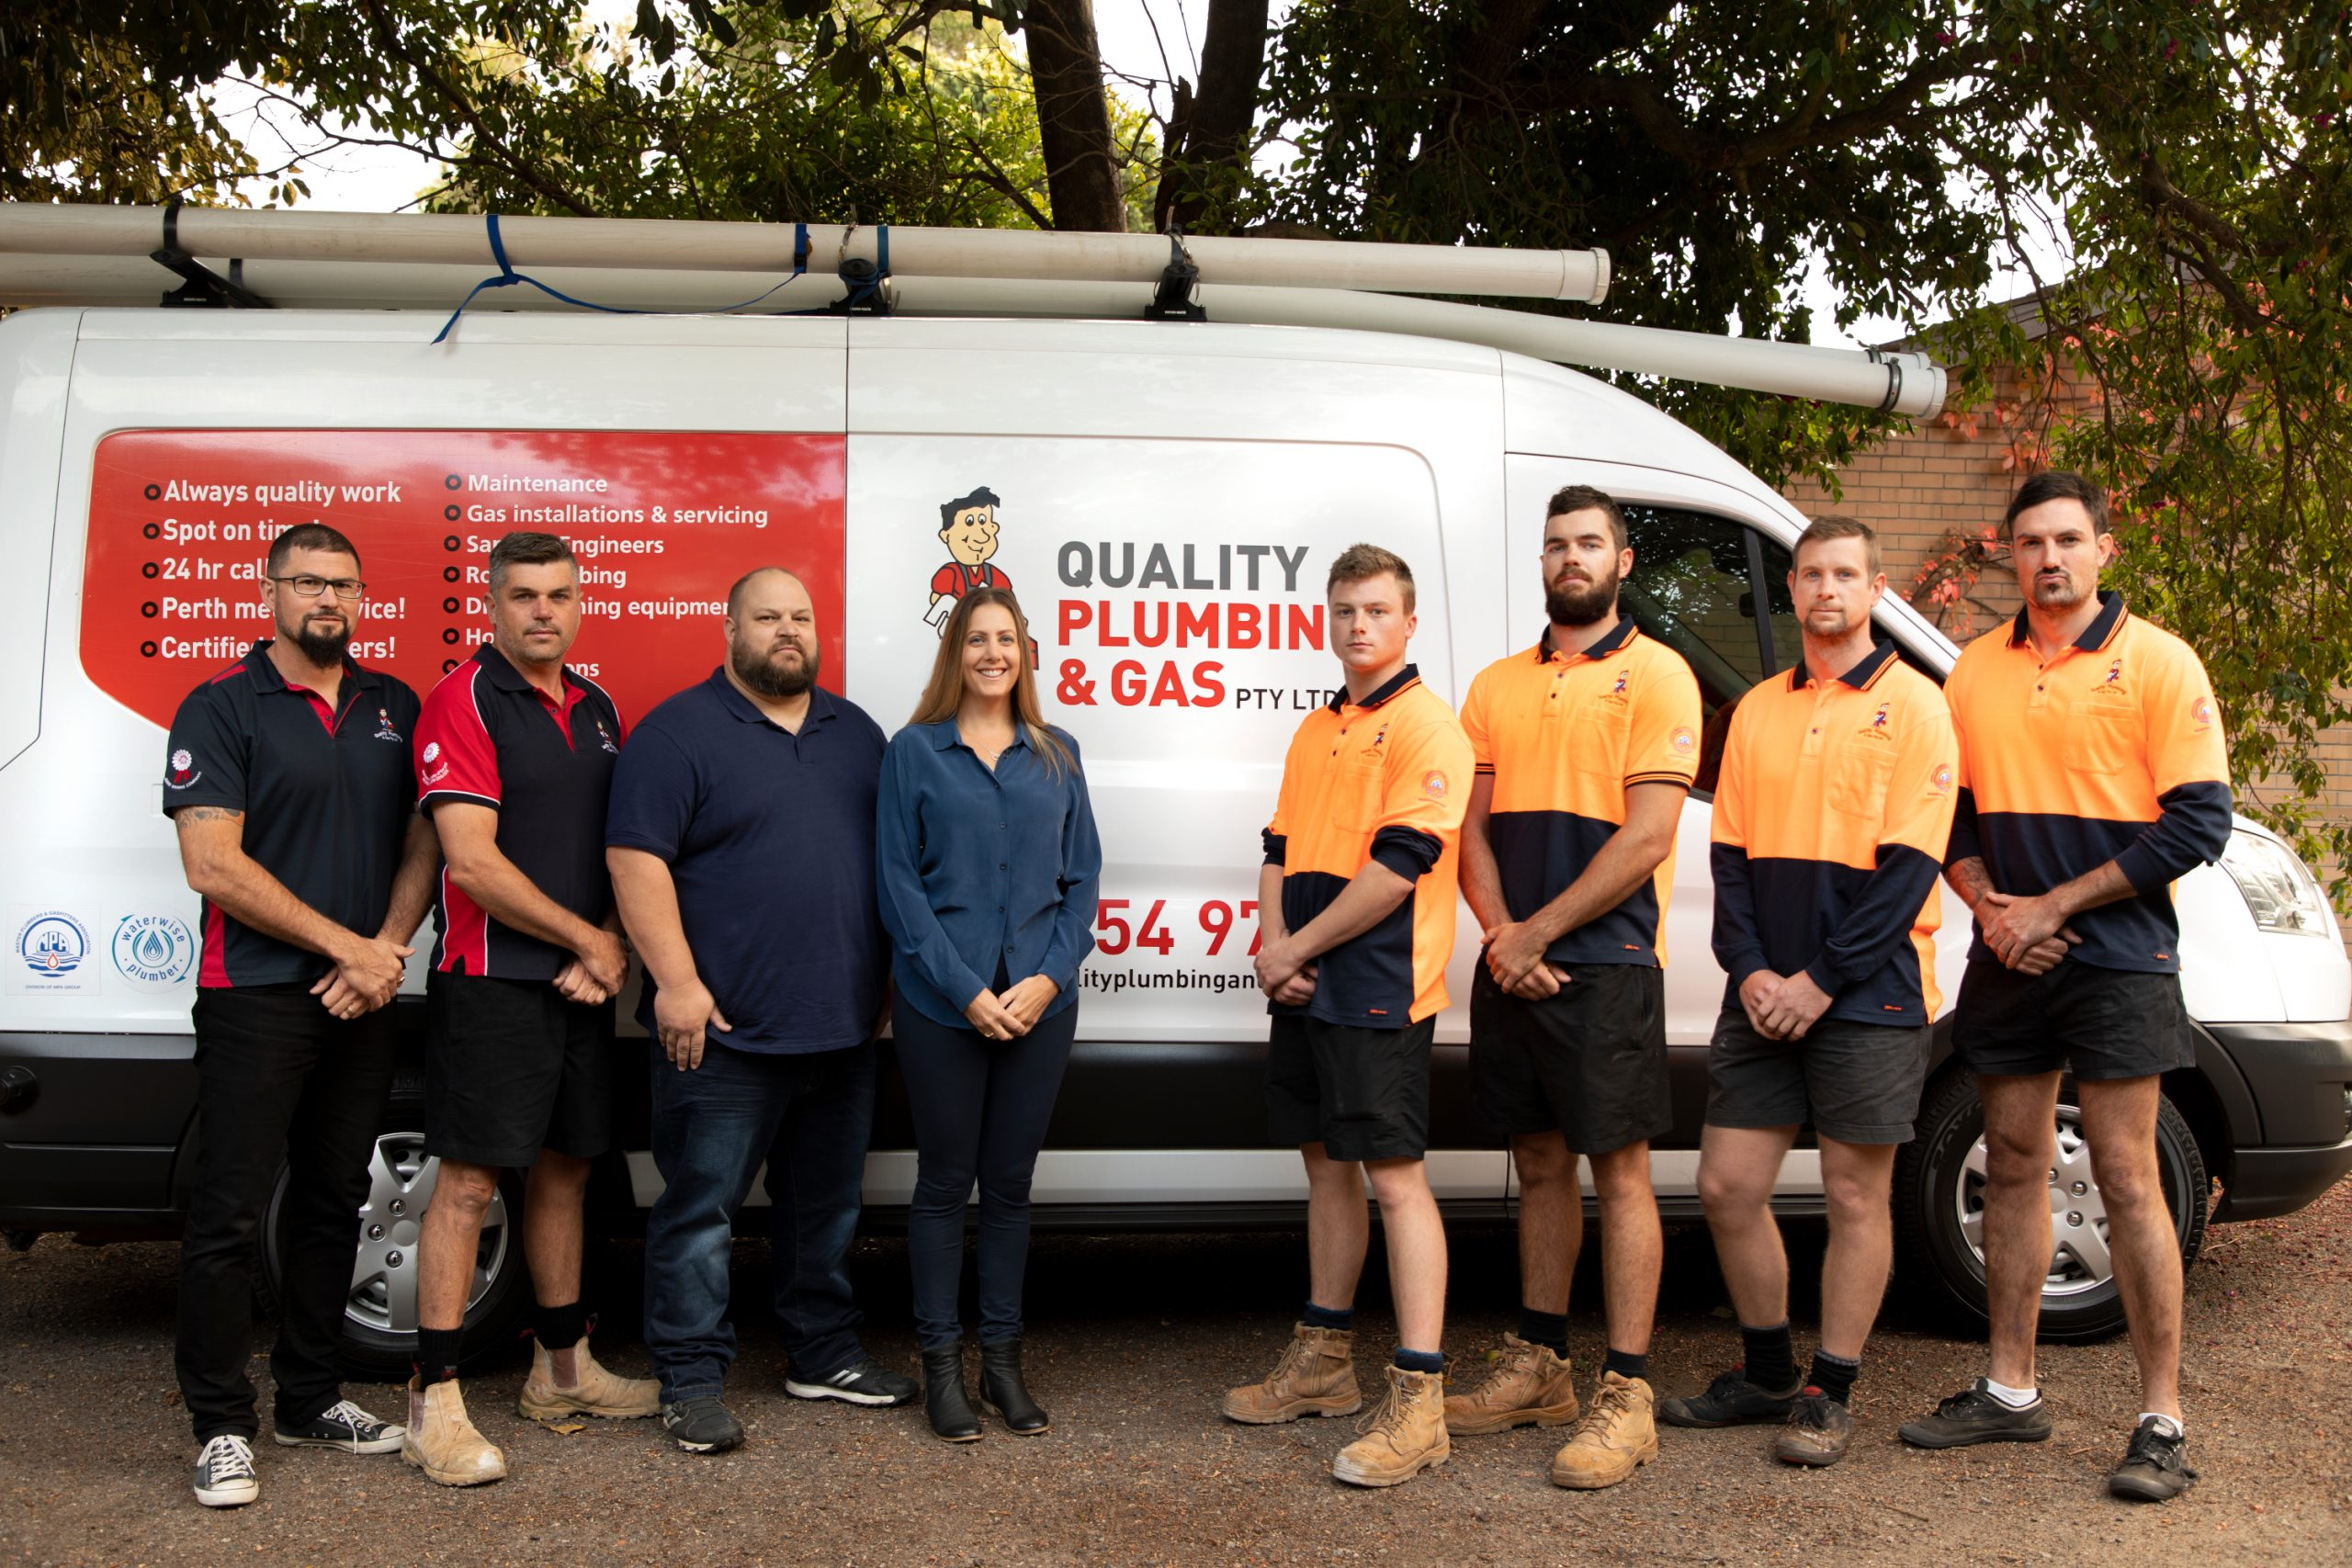 Local Plumbers in Perth